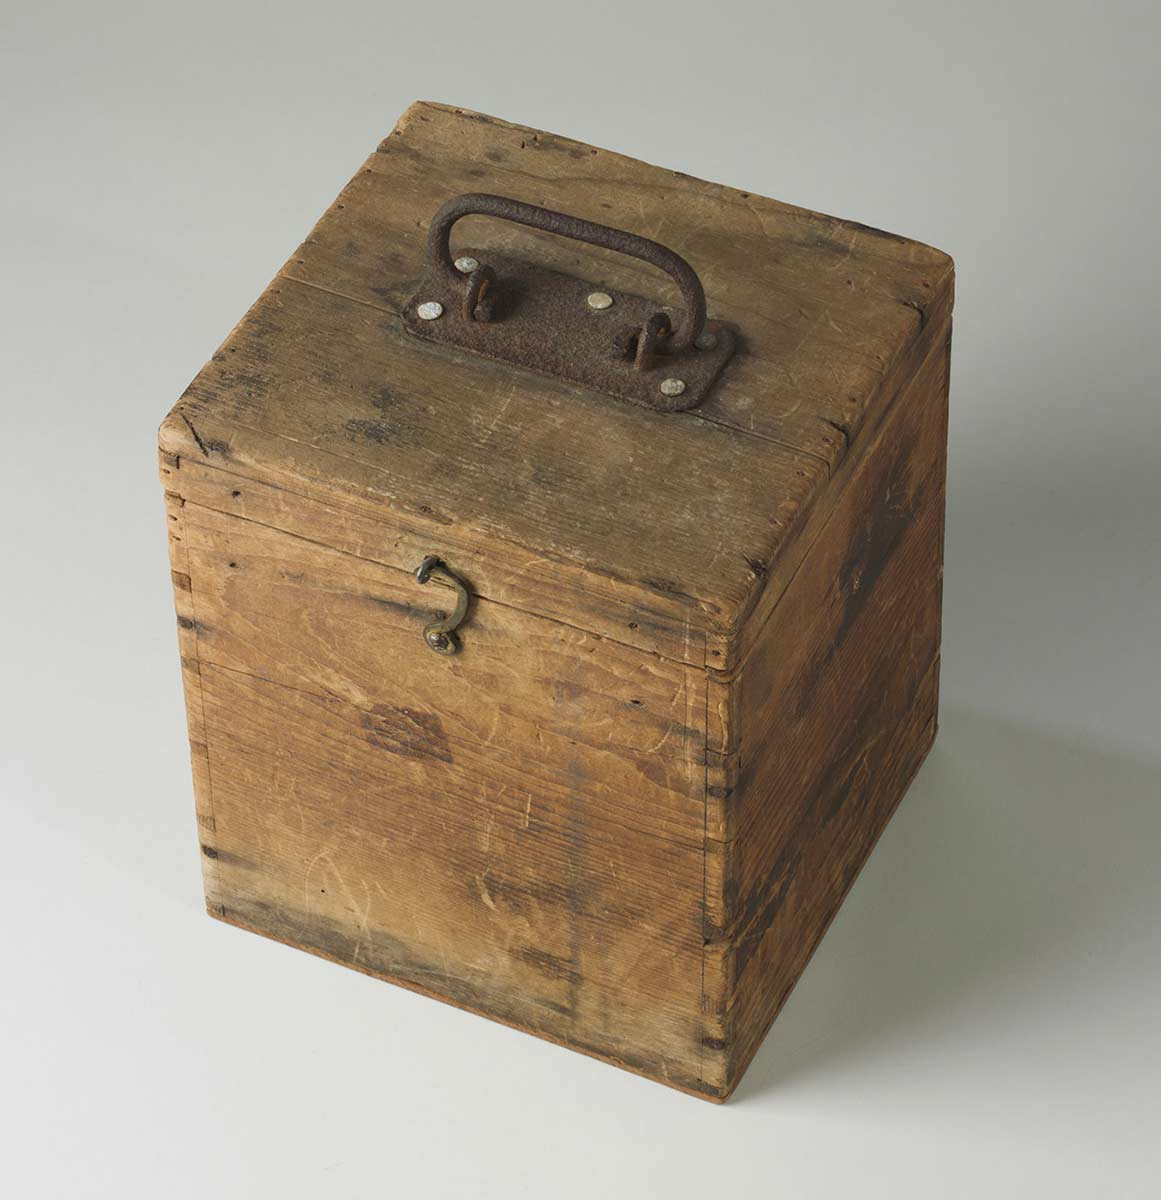 Wooden box with a lid. It has a small metal latch hook at the front and a rusted metal handle on top. - click to view larger image